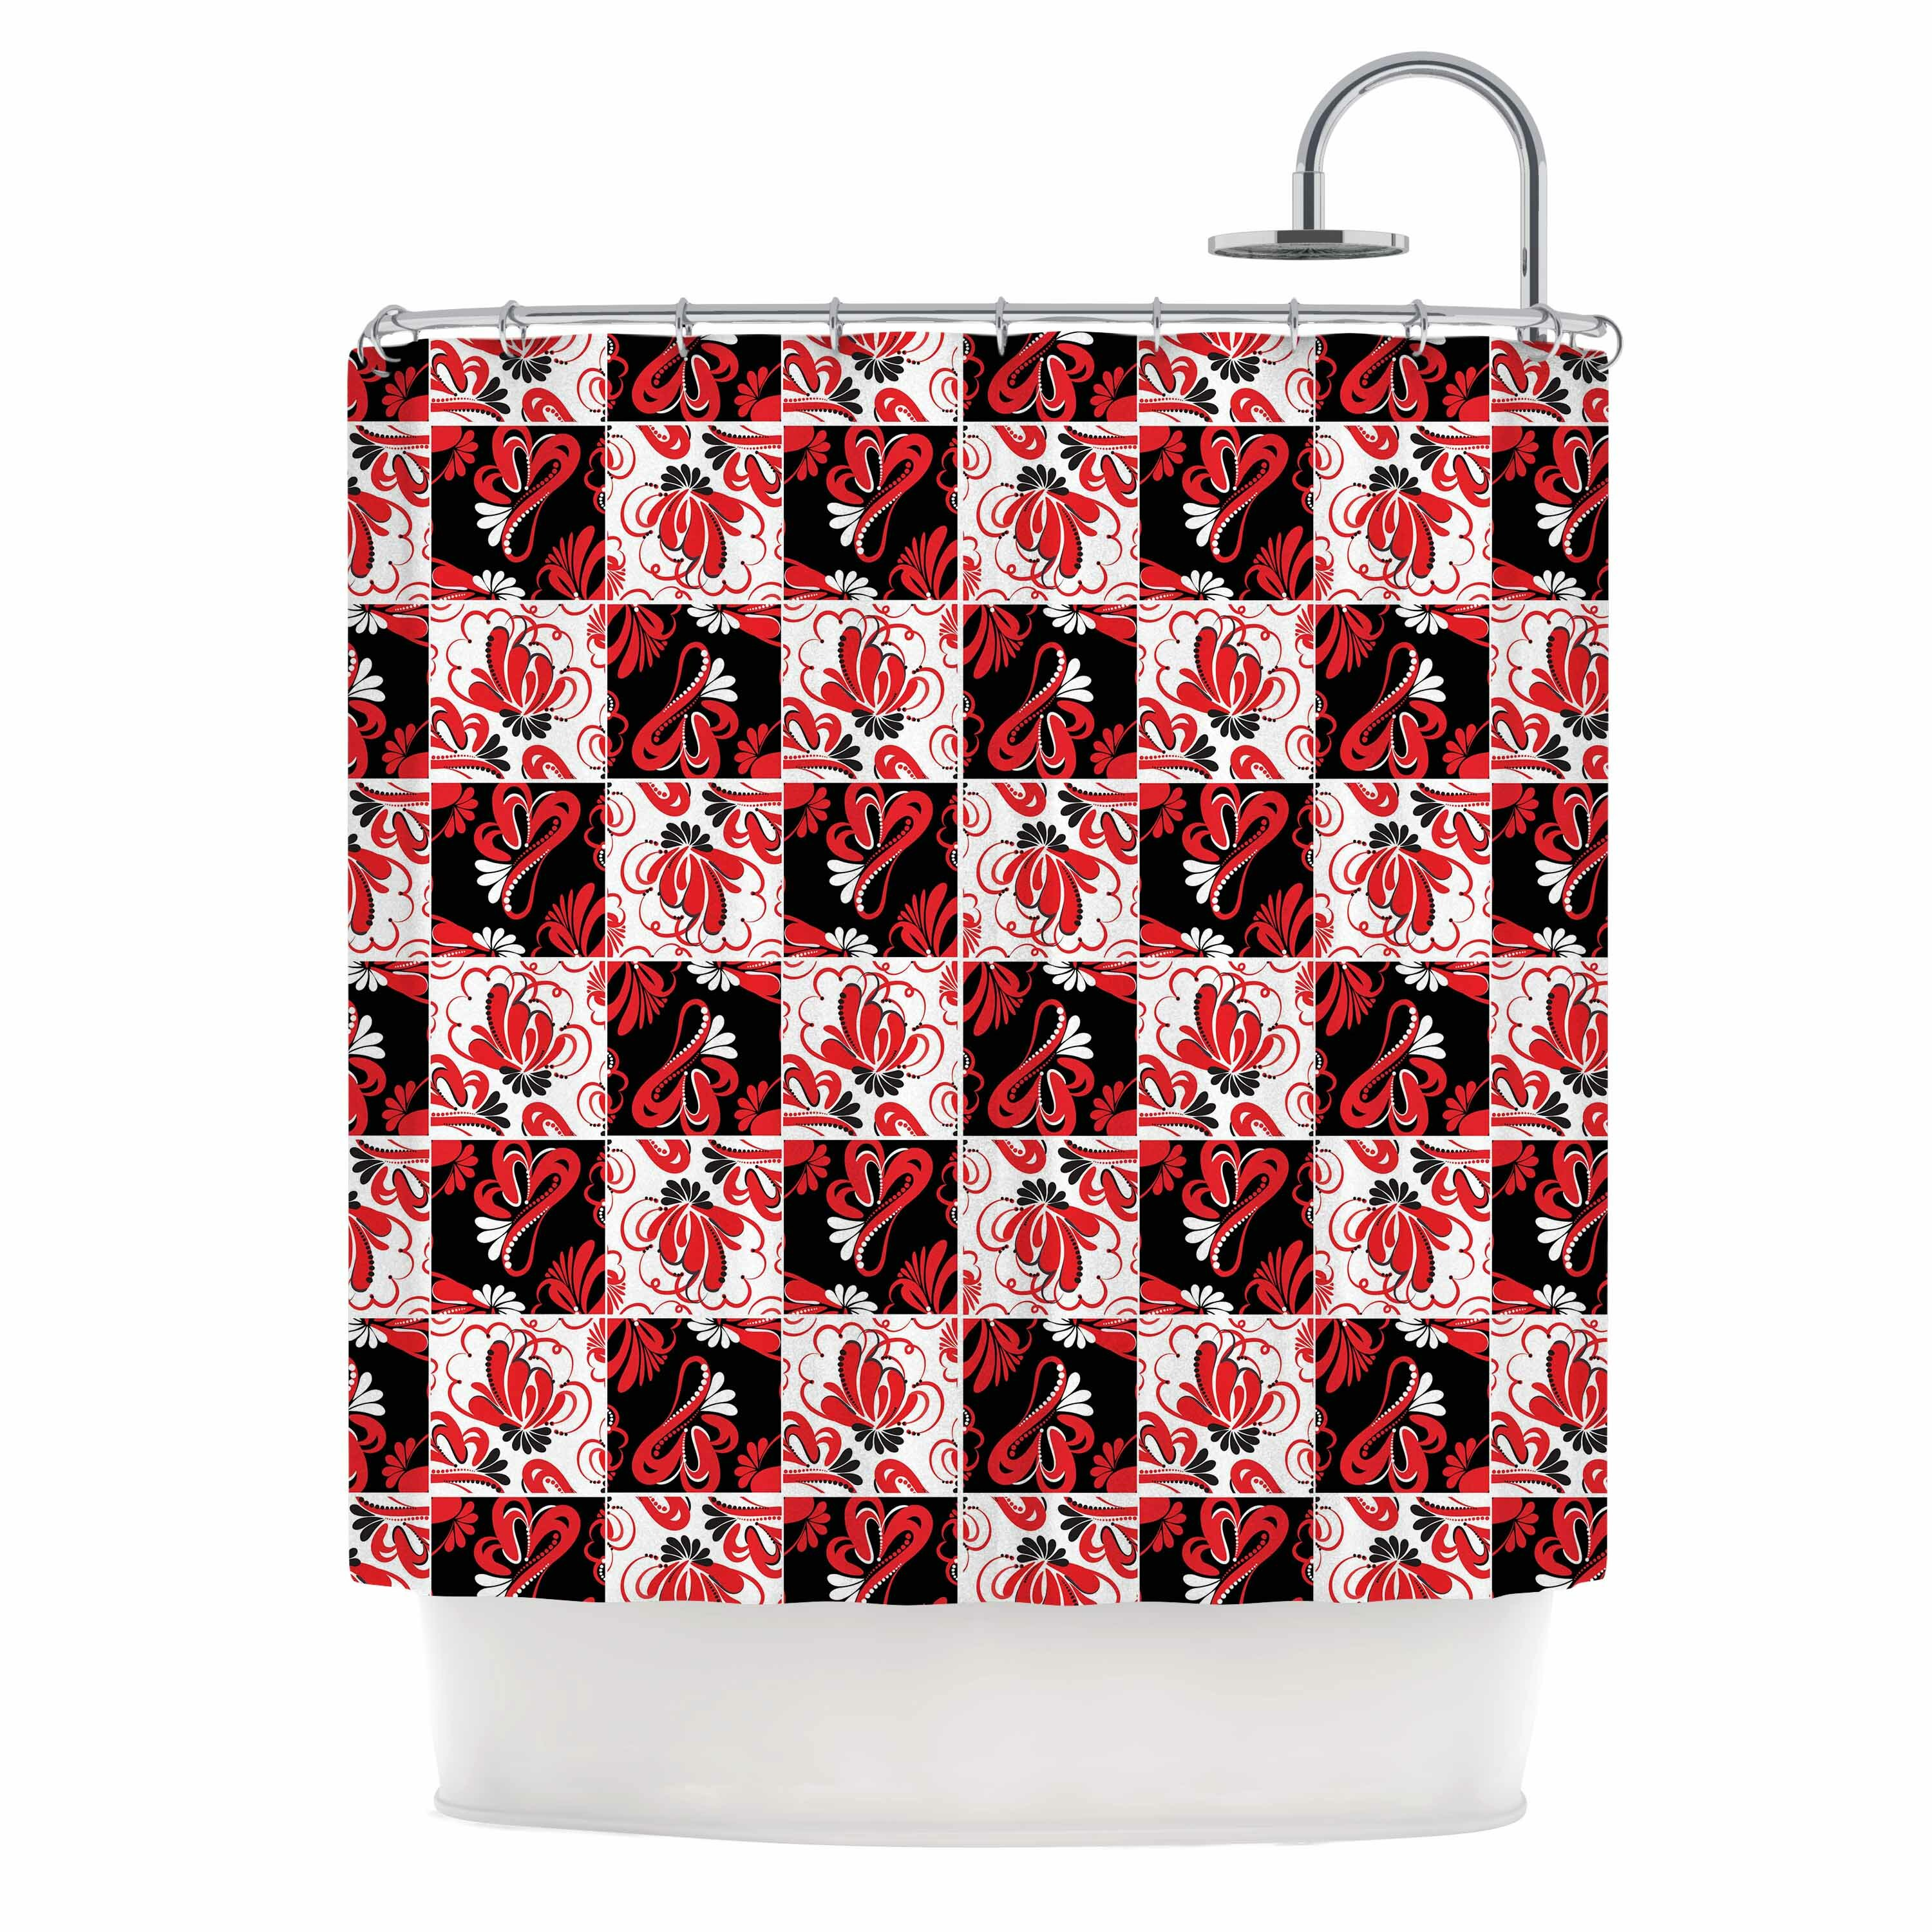 East Urban Home Texture Red Flowers Shower Curtain